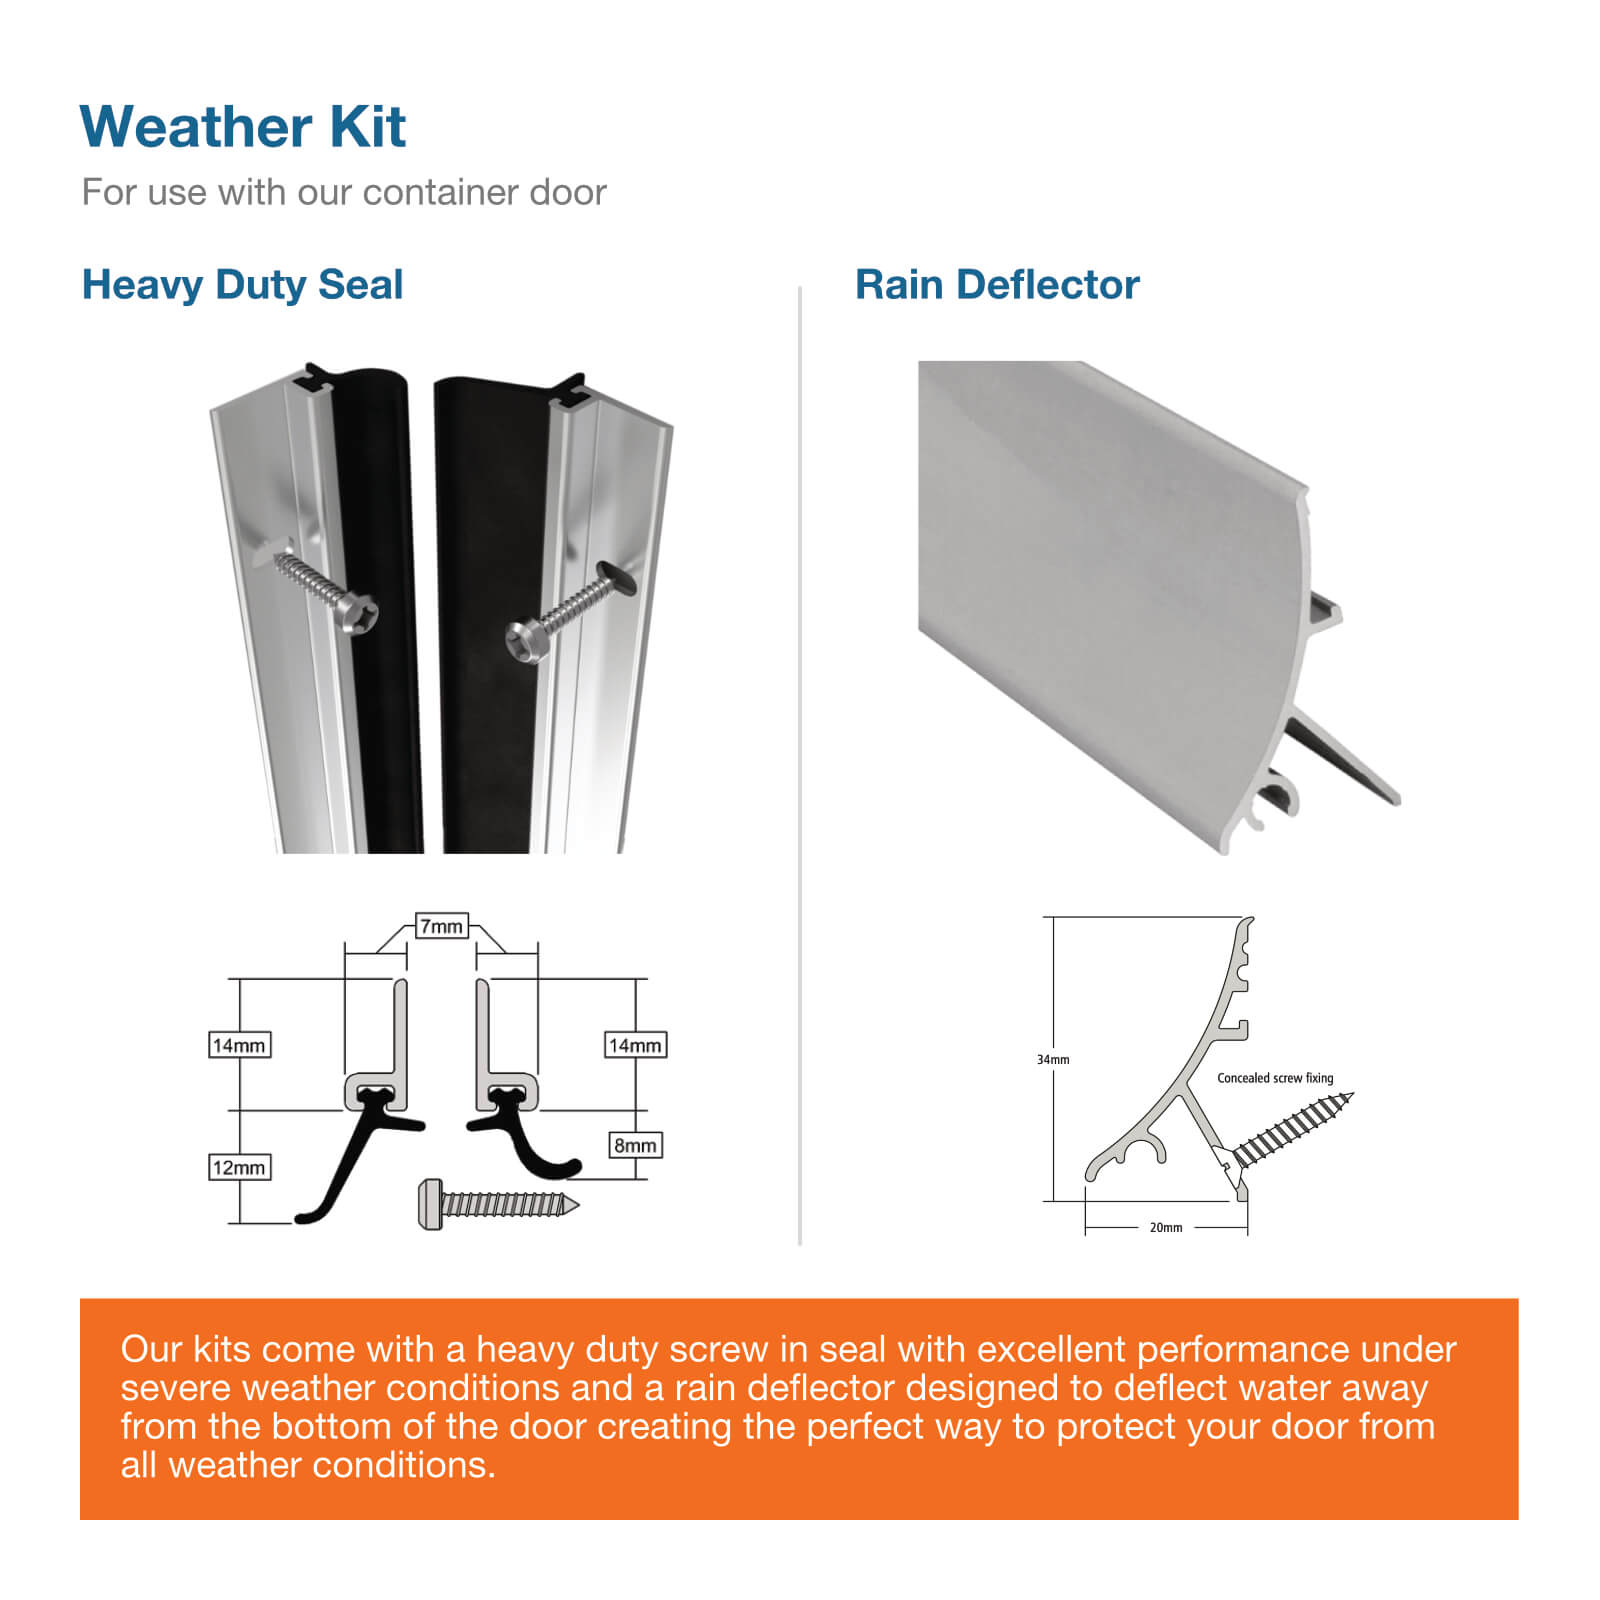 Weather kit for a container door